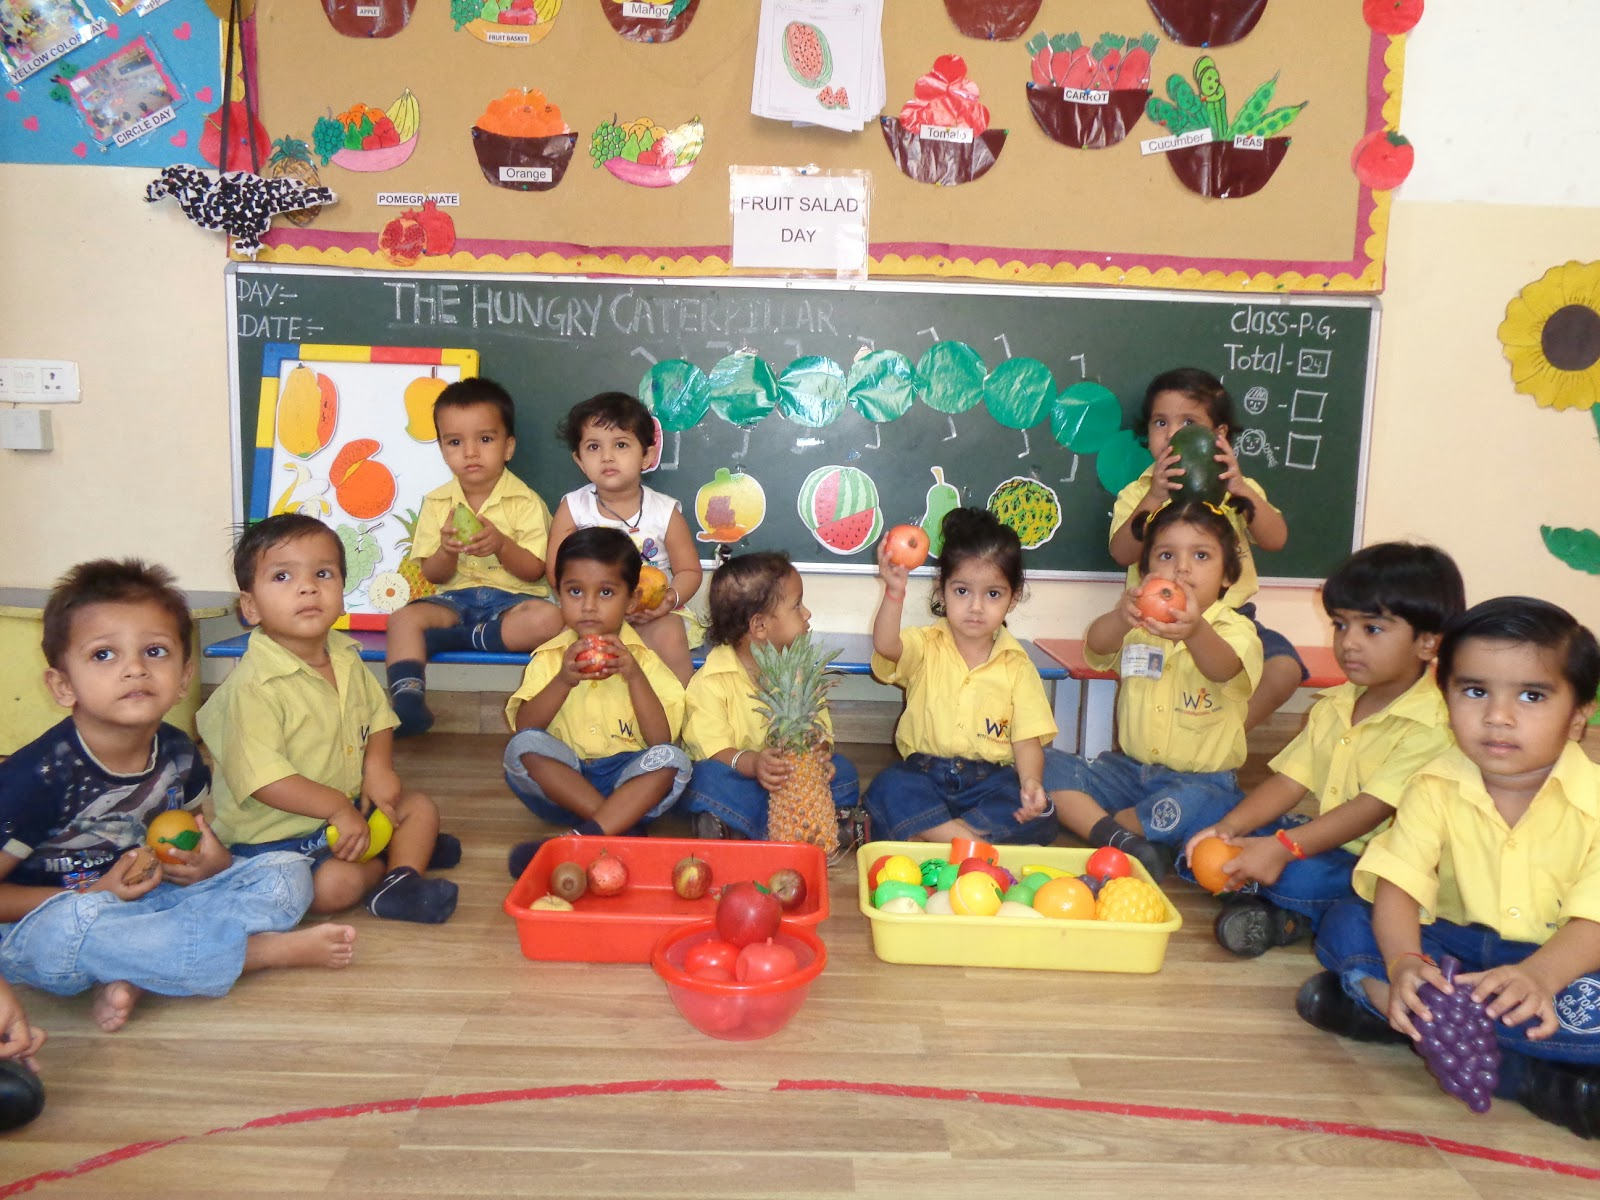 fruit salad yummy yummy healthy fruit juices for kids